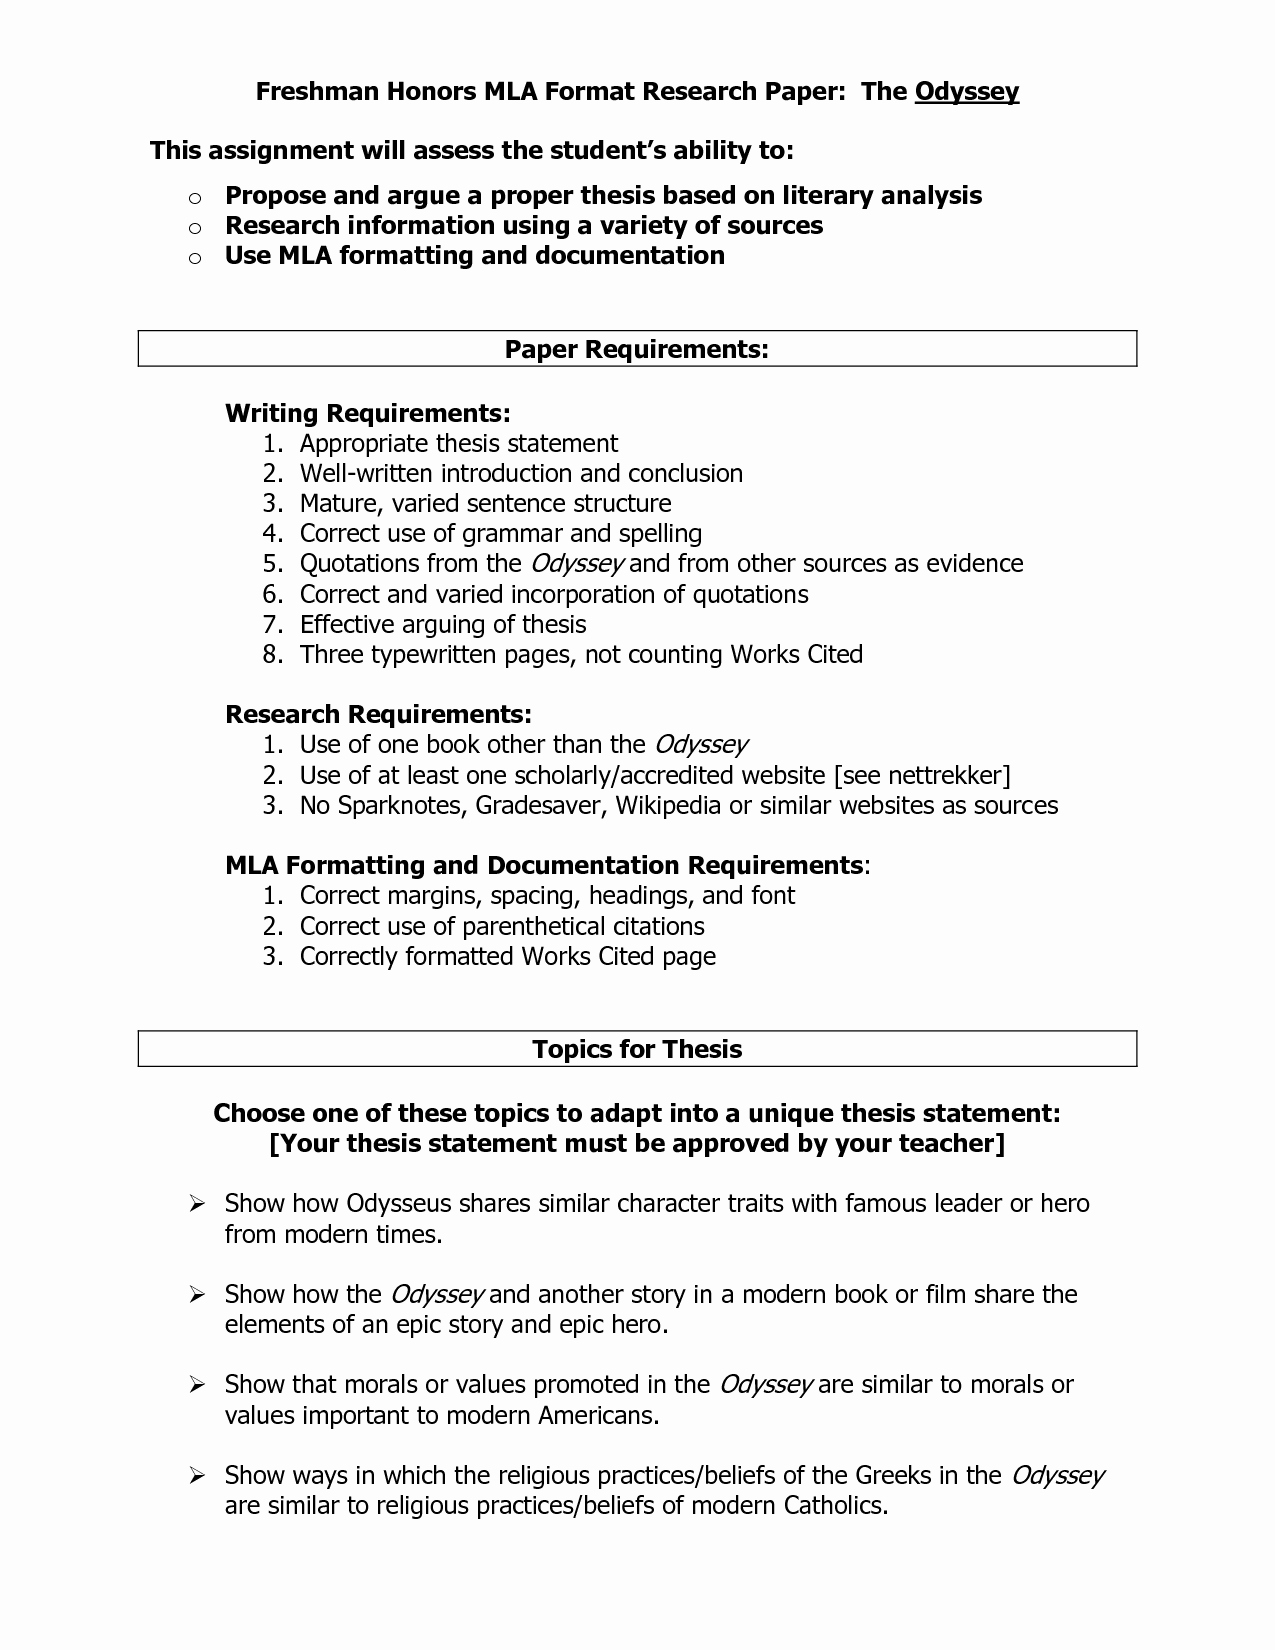 Mla Style Research Paper format Lovely History Essay and Research Papers Cool Essay